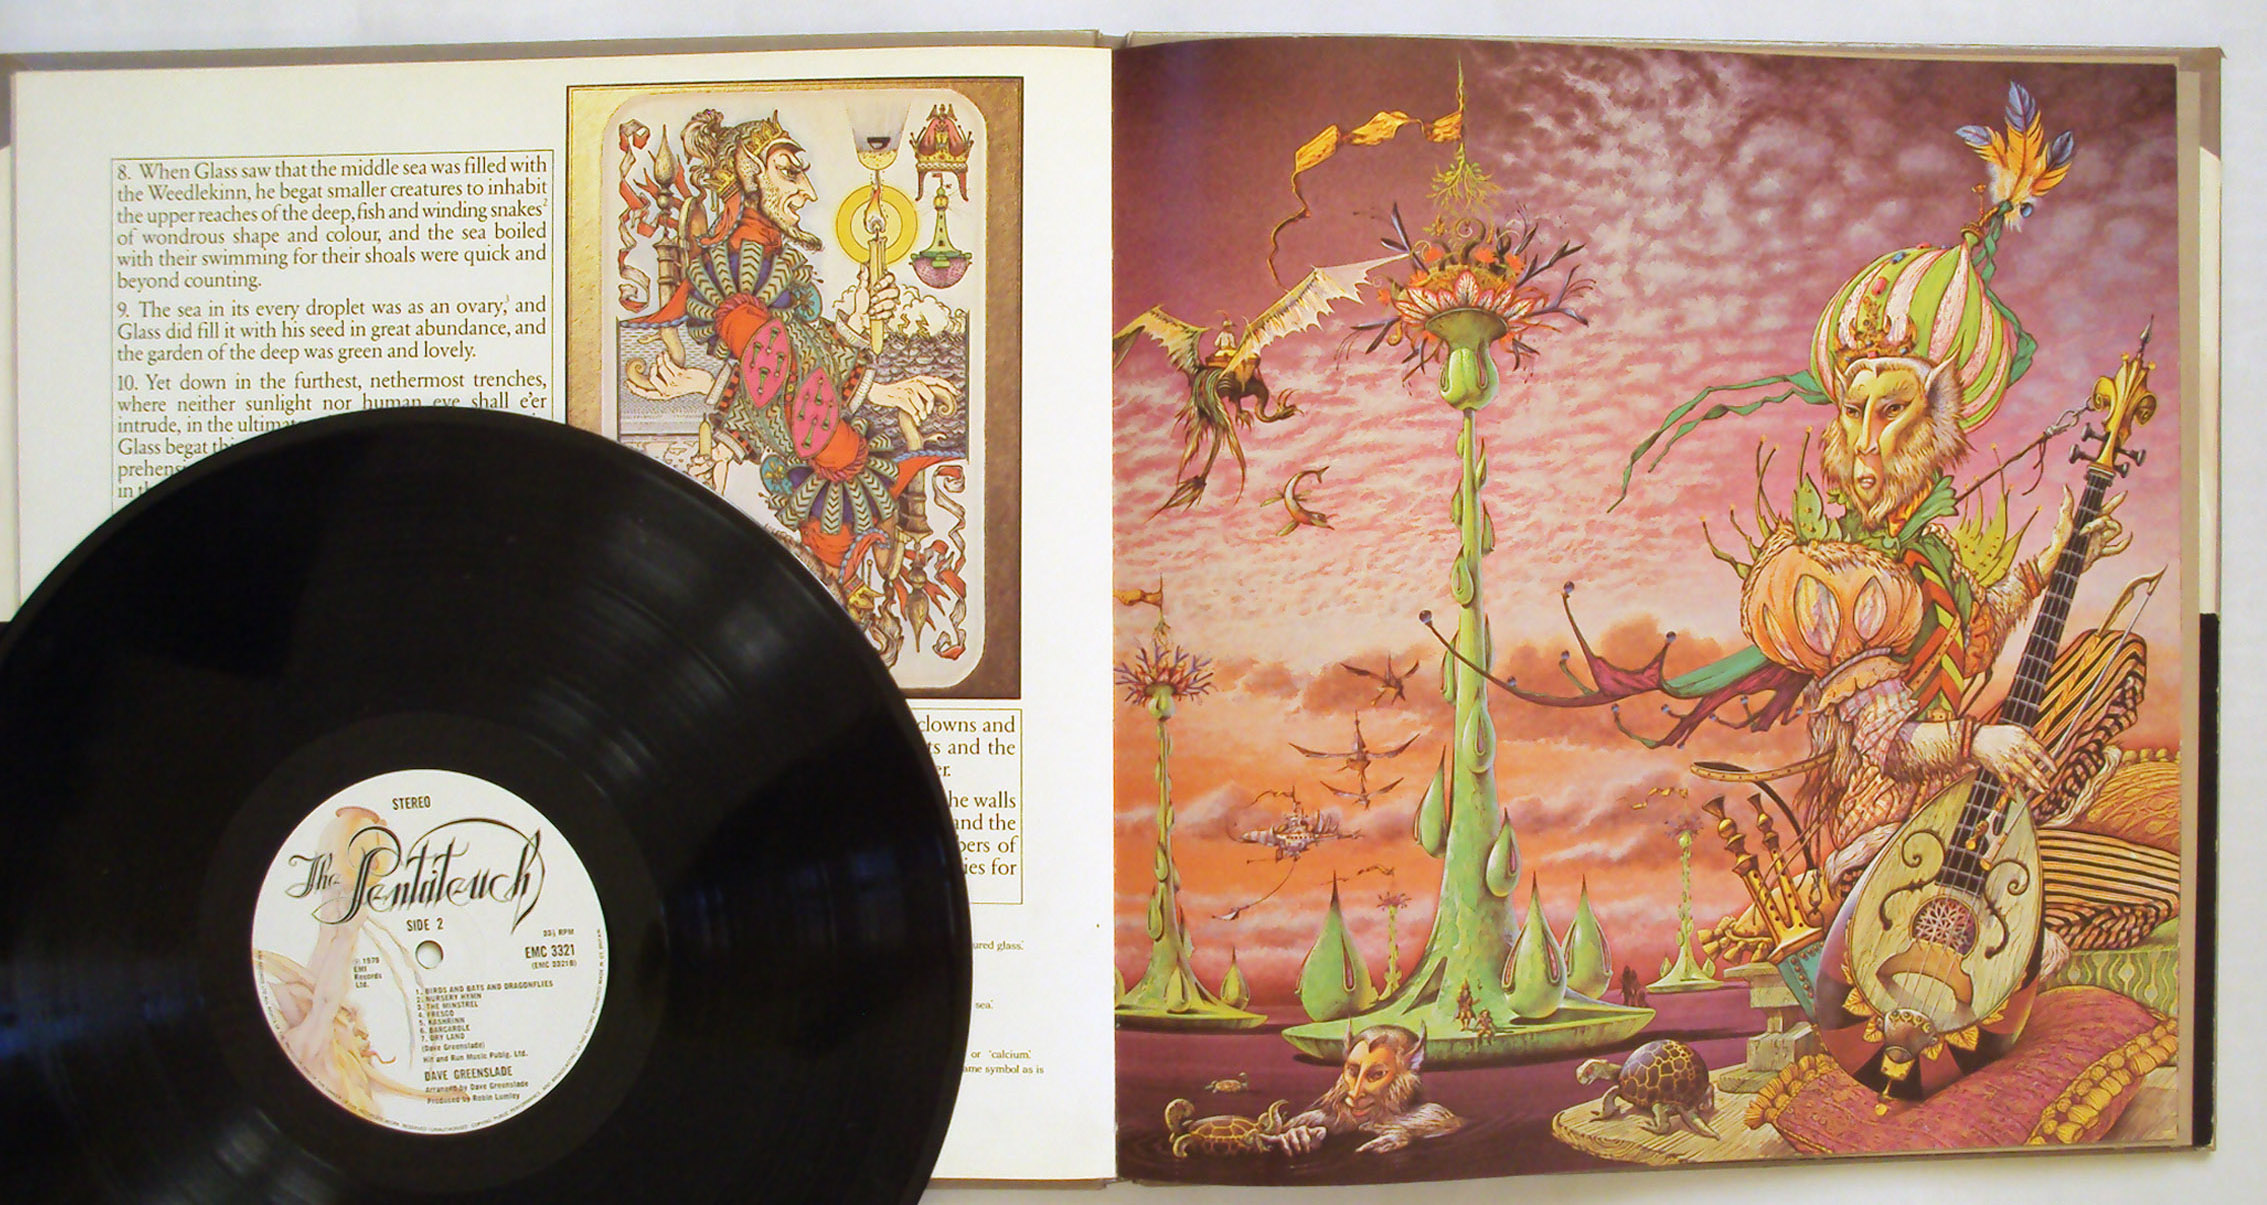 Patrick Woodroffe & Dave Greenslade the pentateuch of the cosmogony